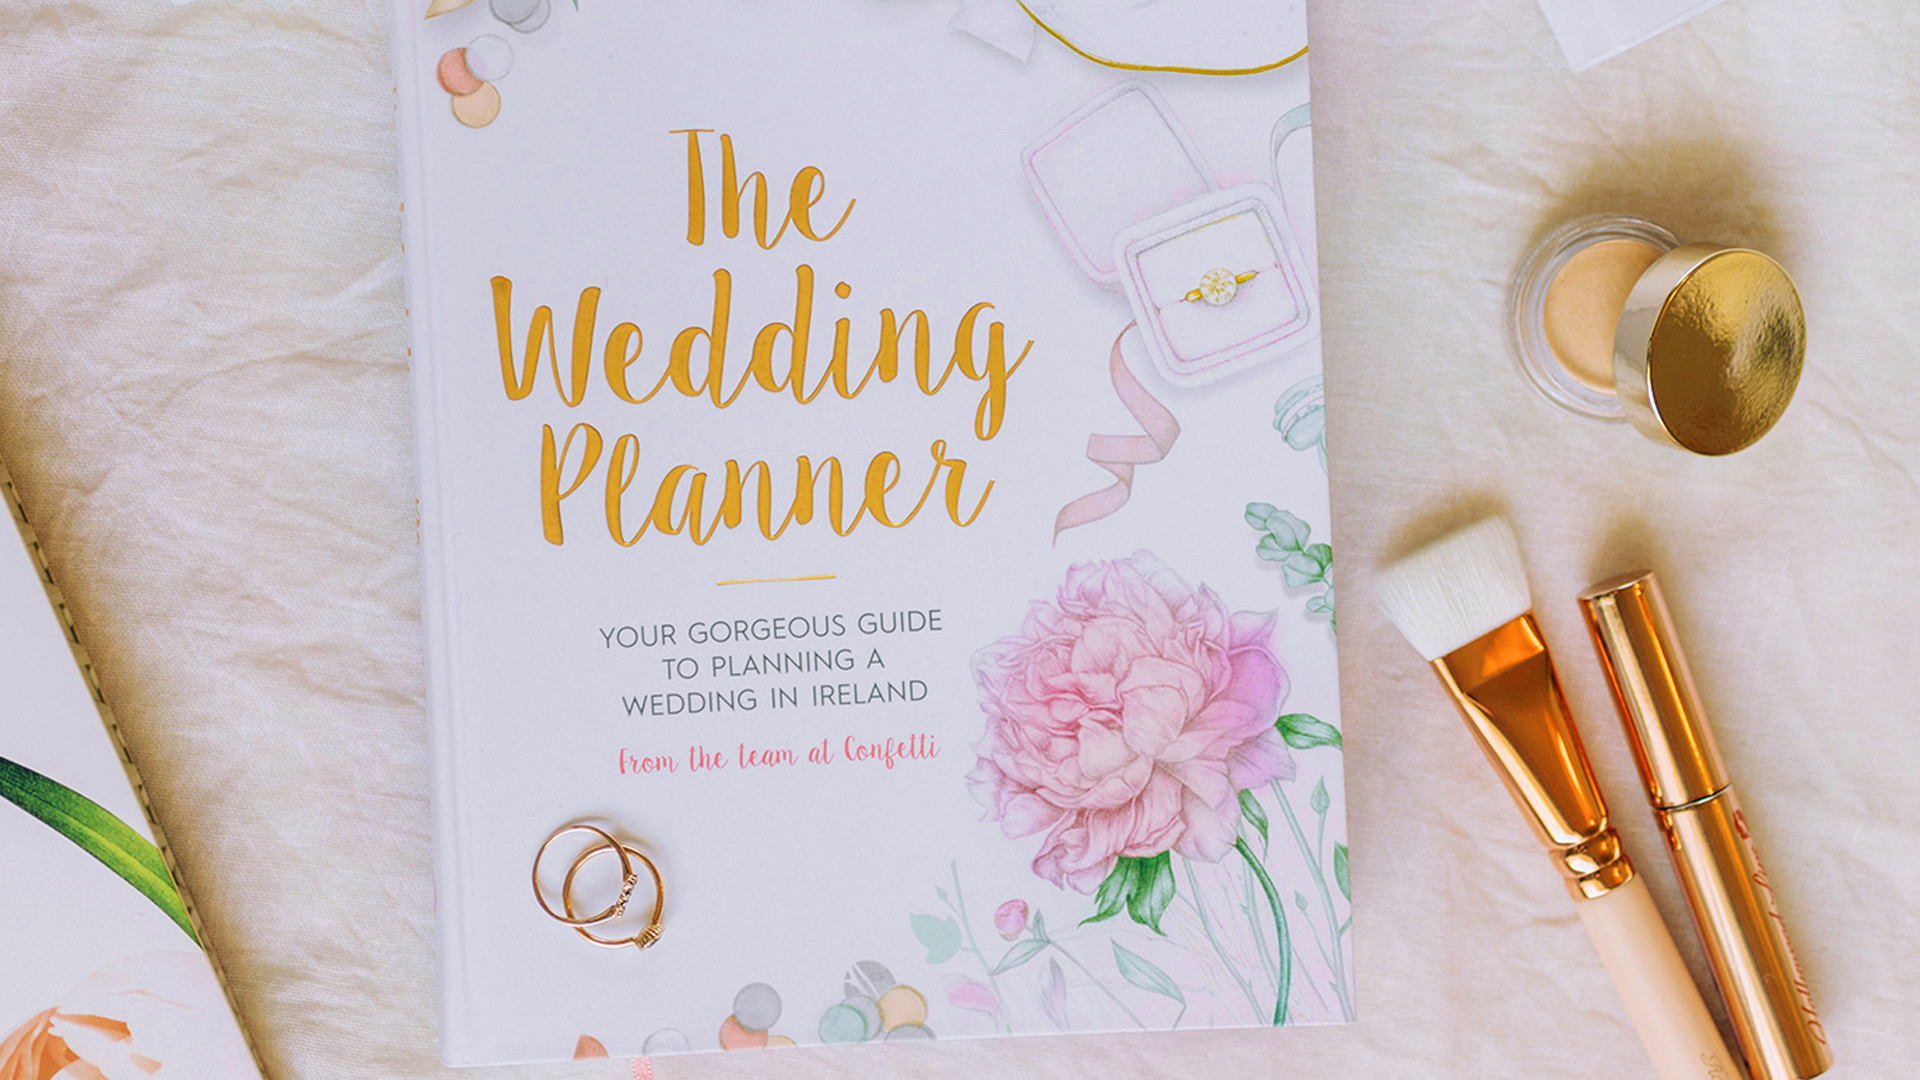 The Top Mistakes Couples Make While Wedding Planning